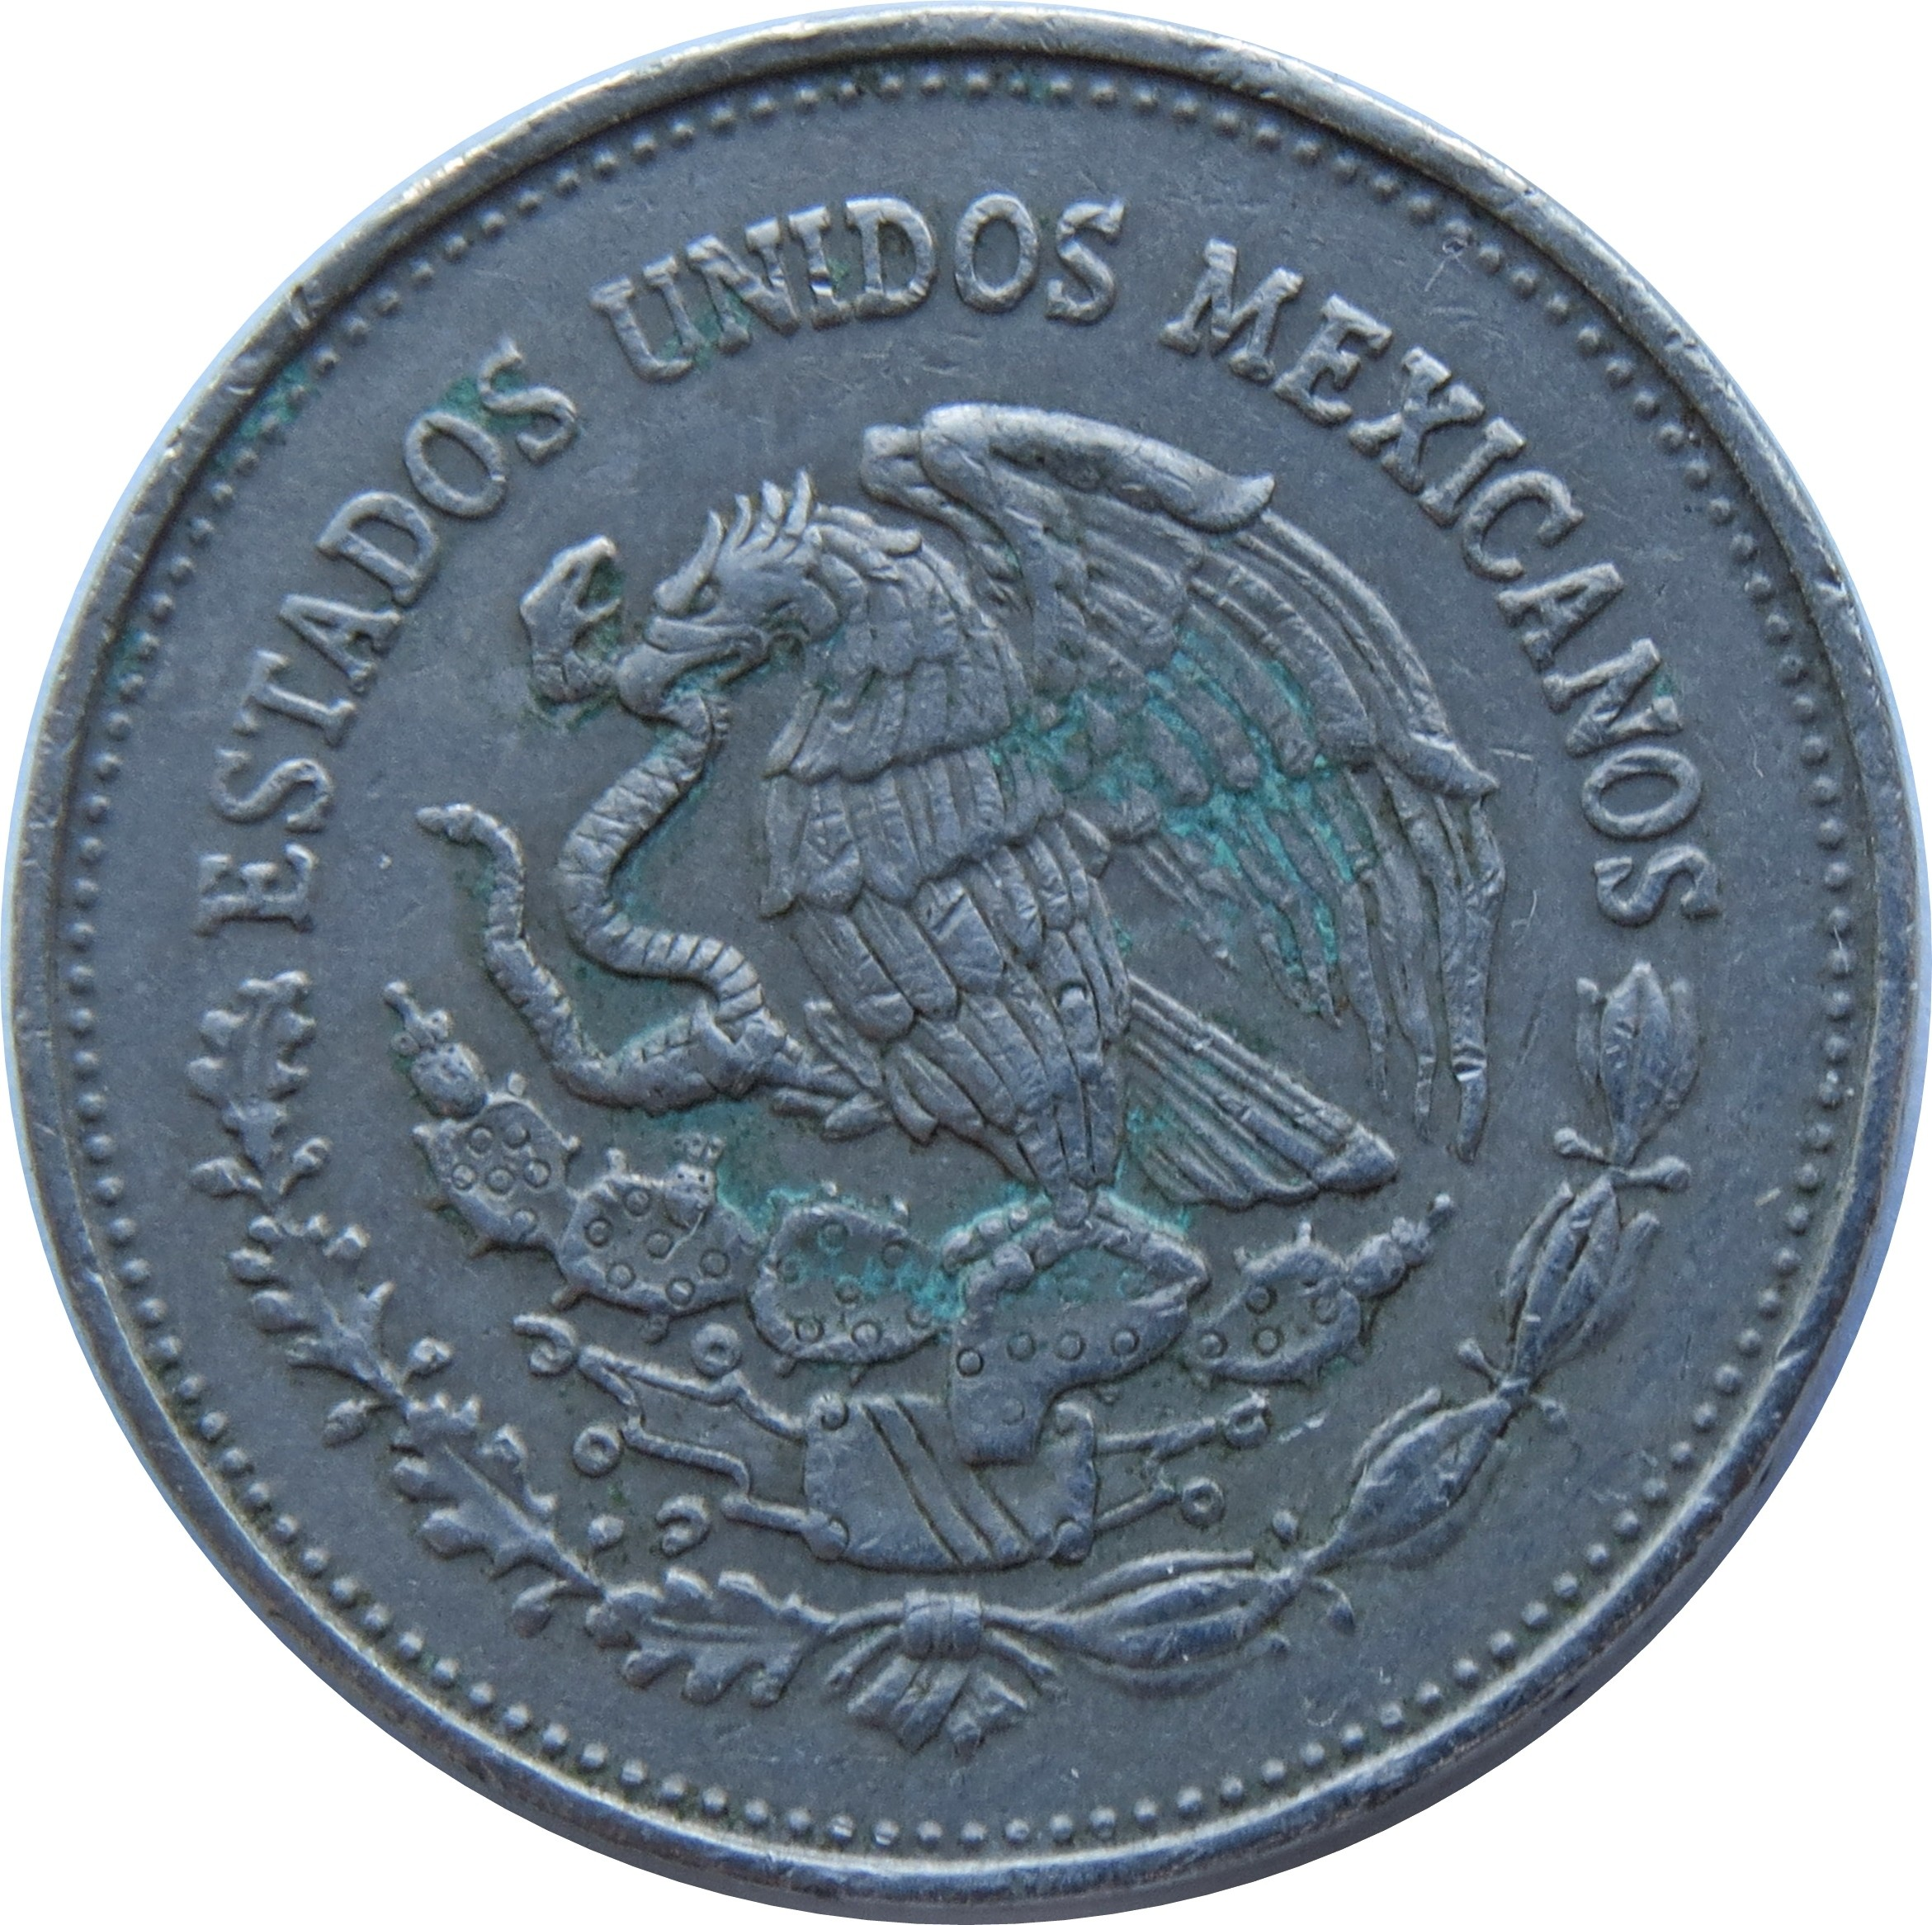 Mexico 200 Pesos (1985 75th Anniversary of 1910 Revolution)